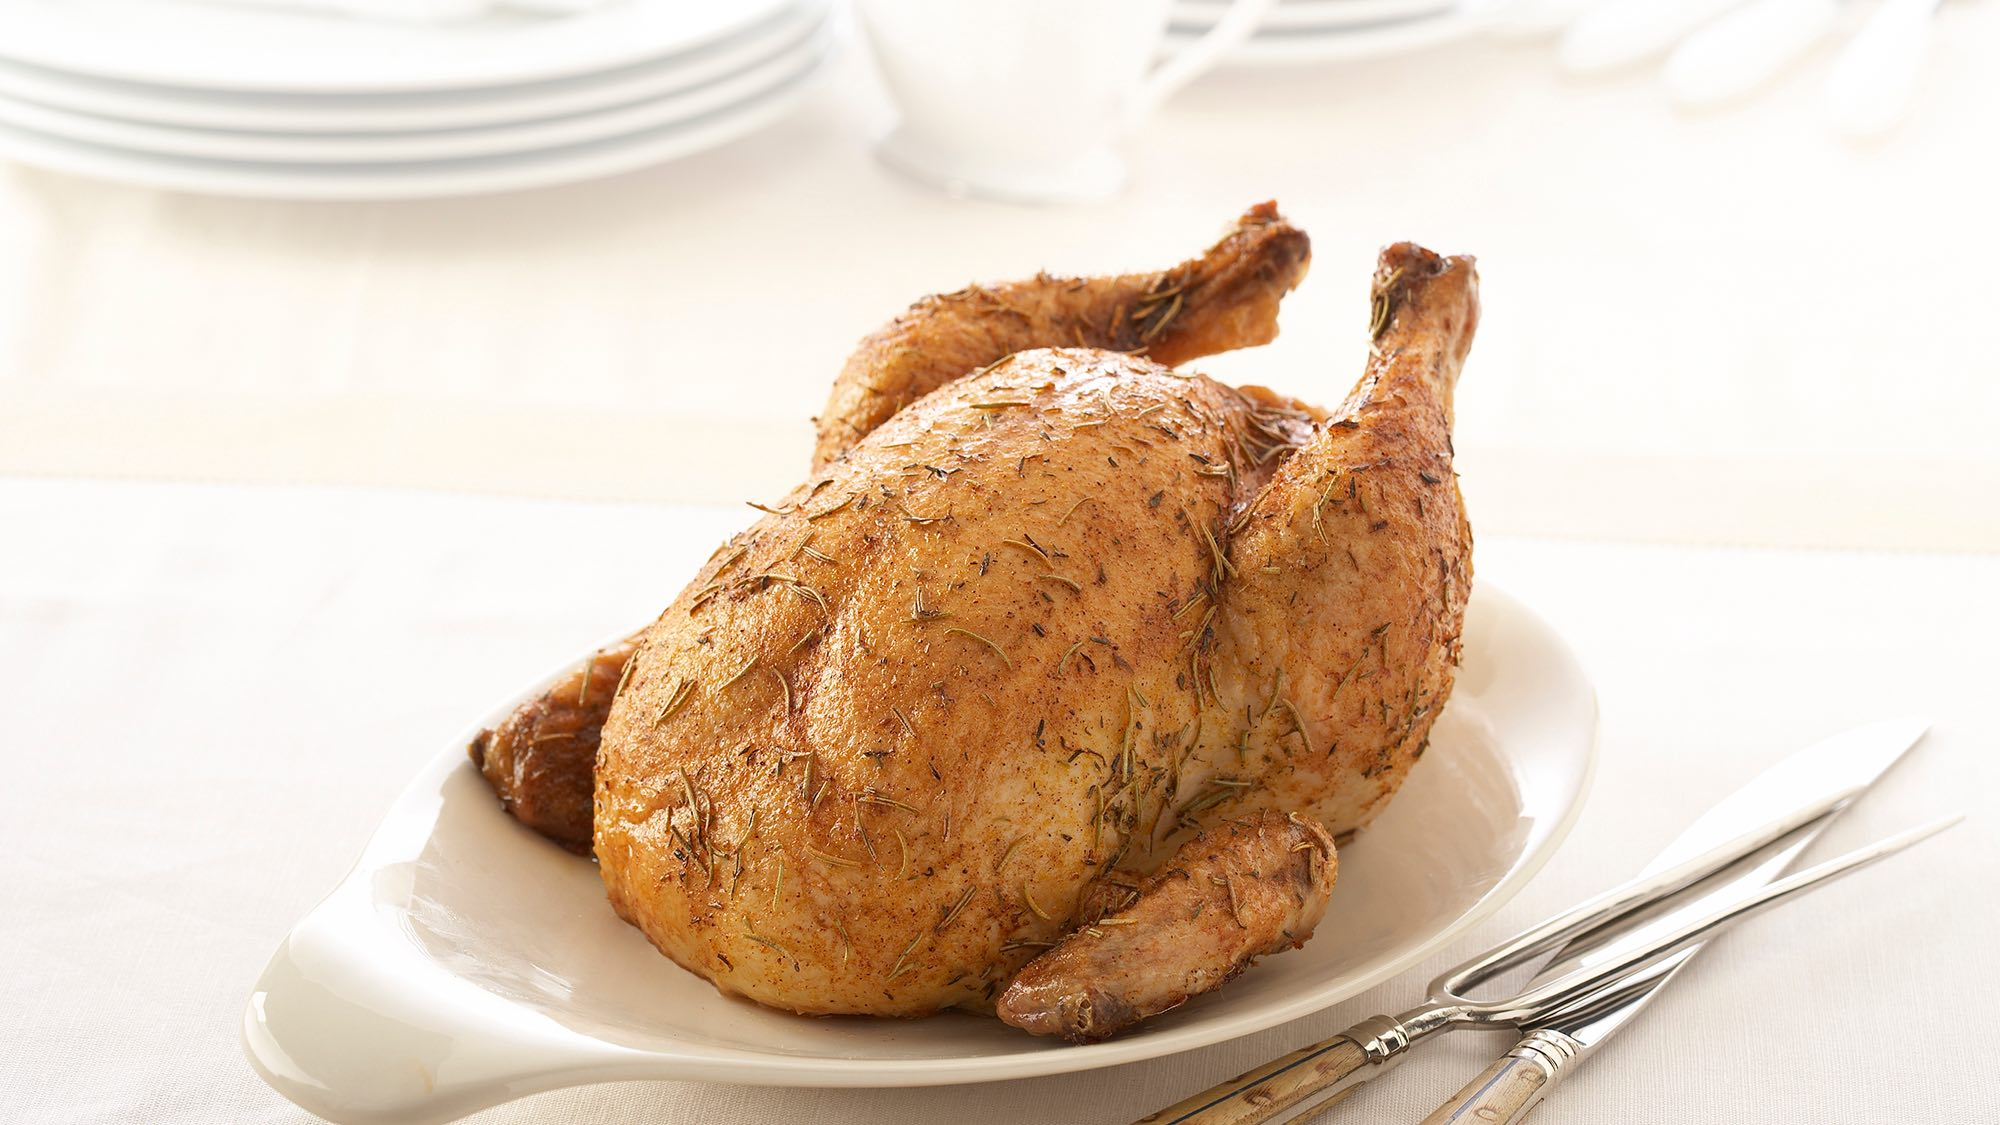 rosemary-roasted-chicken.jpg